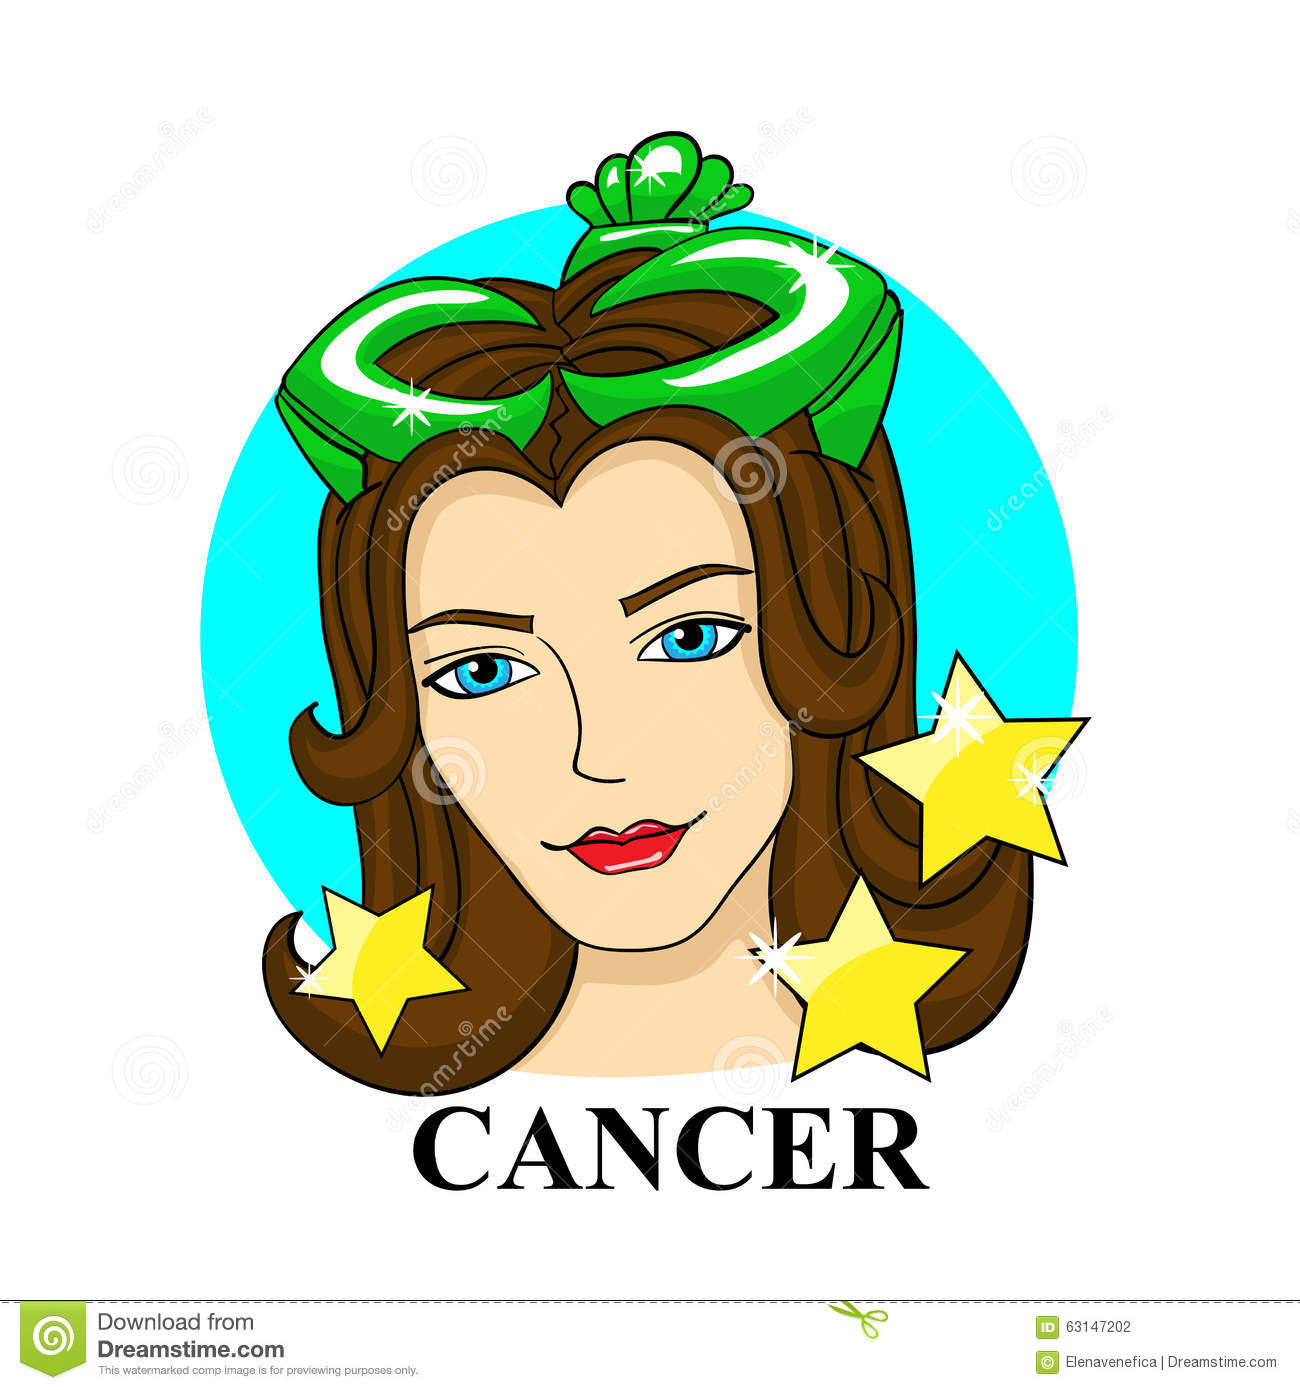 Cancer zodiac sign astrological symbol stock vector cancer zodiac sign astrological symbol biocorpaavc Gallery